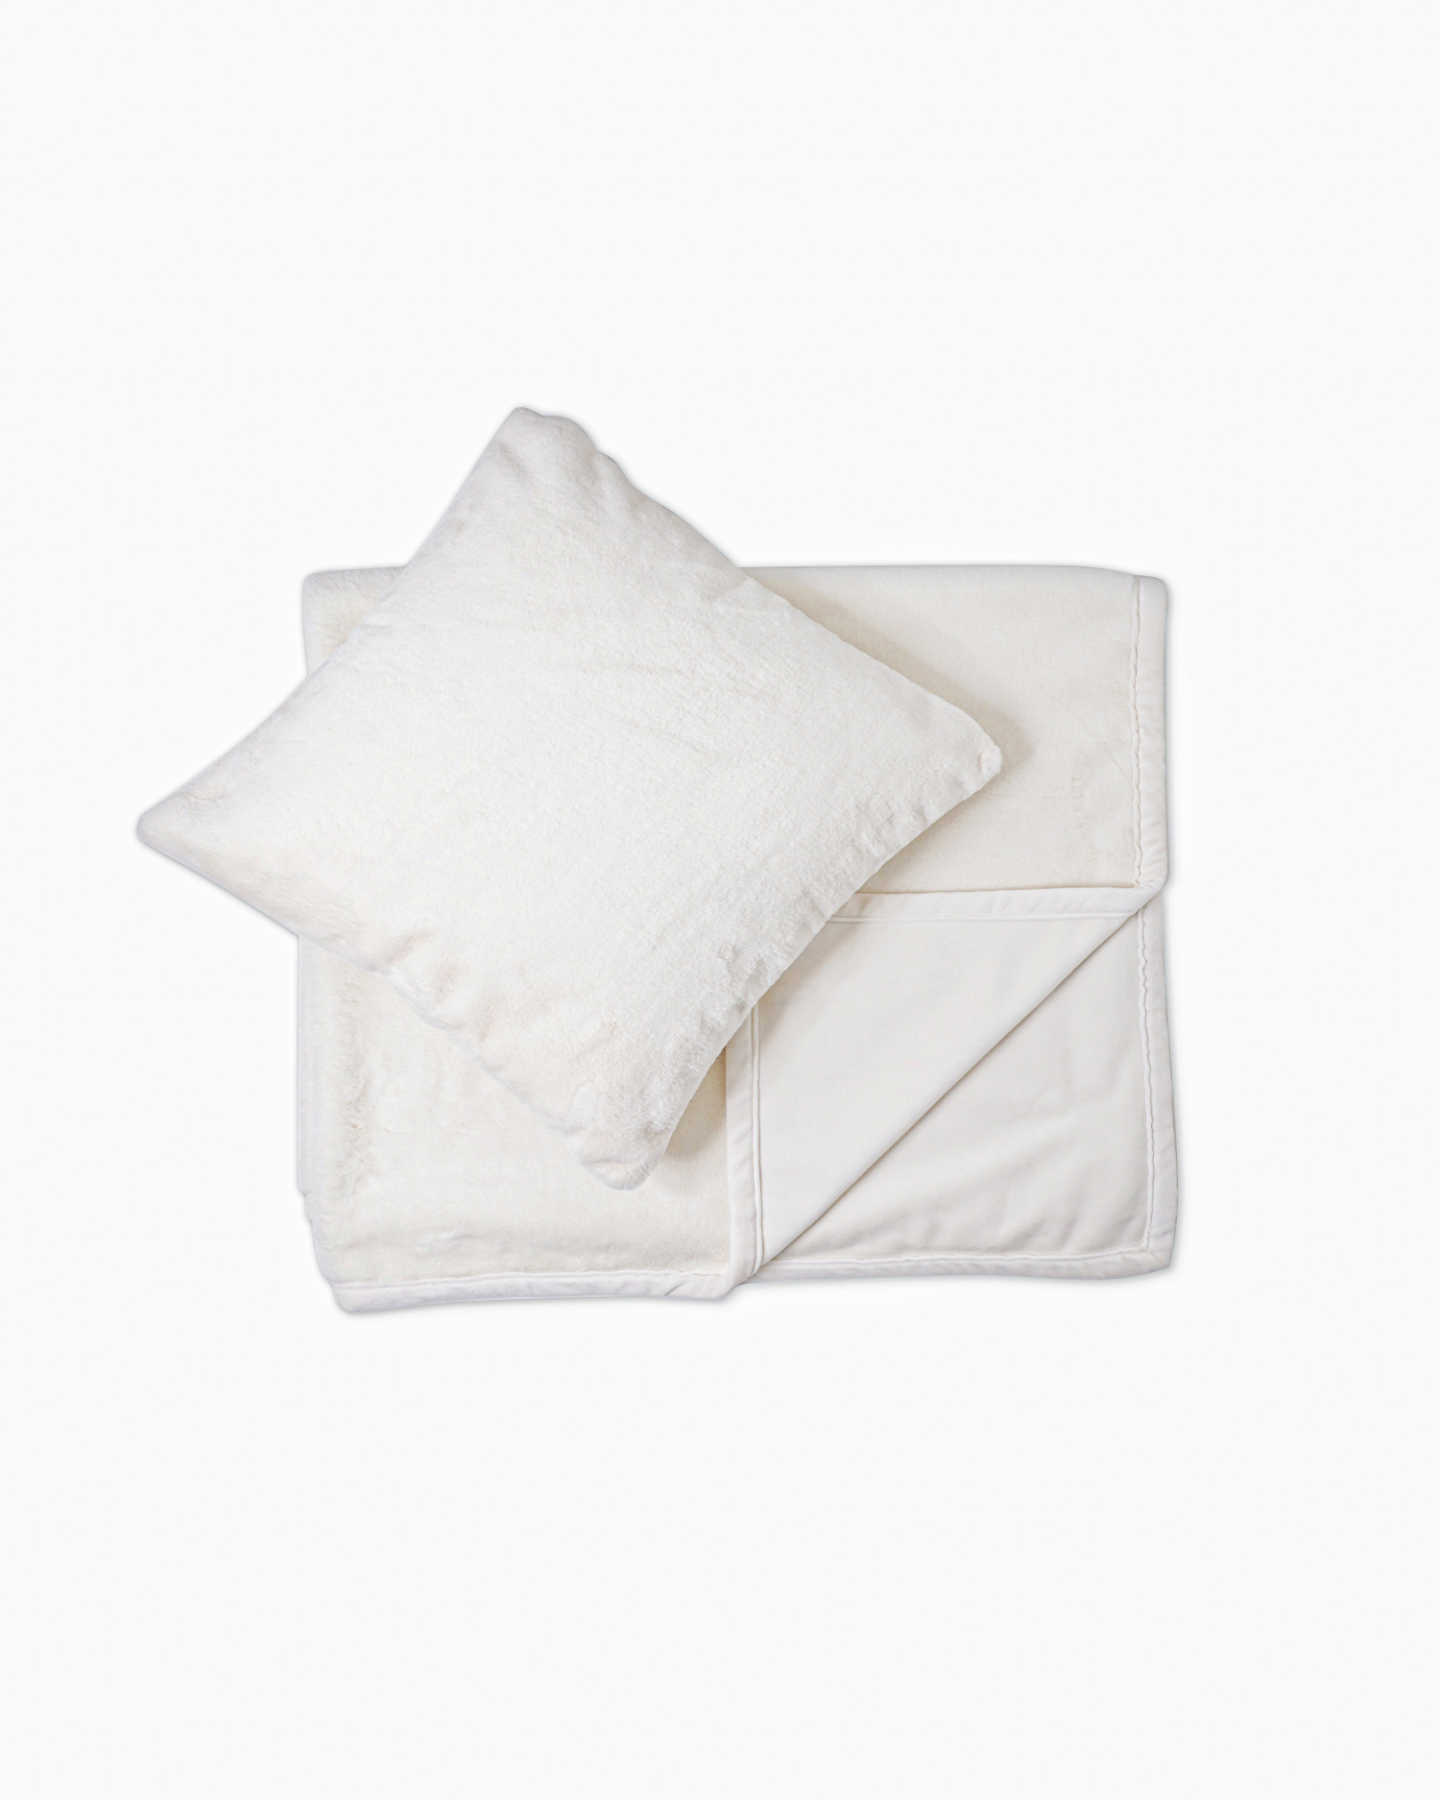 Plush Recycled Faux Fur Throw & Pillow Cover Set - Ivory - 0